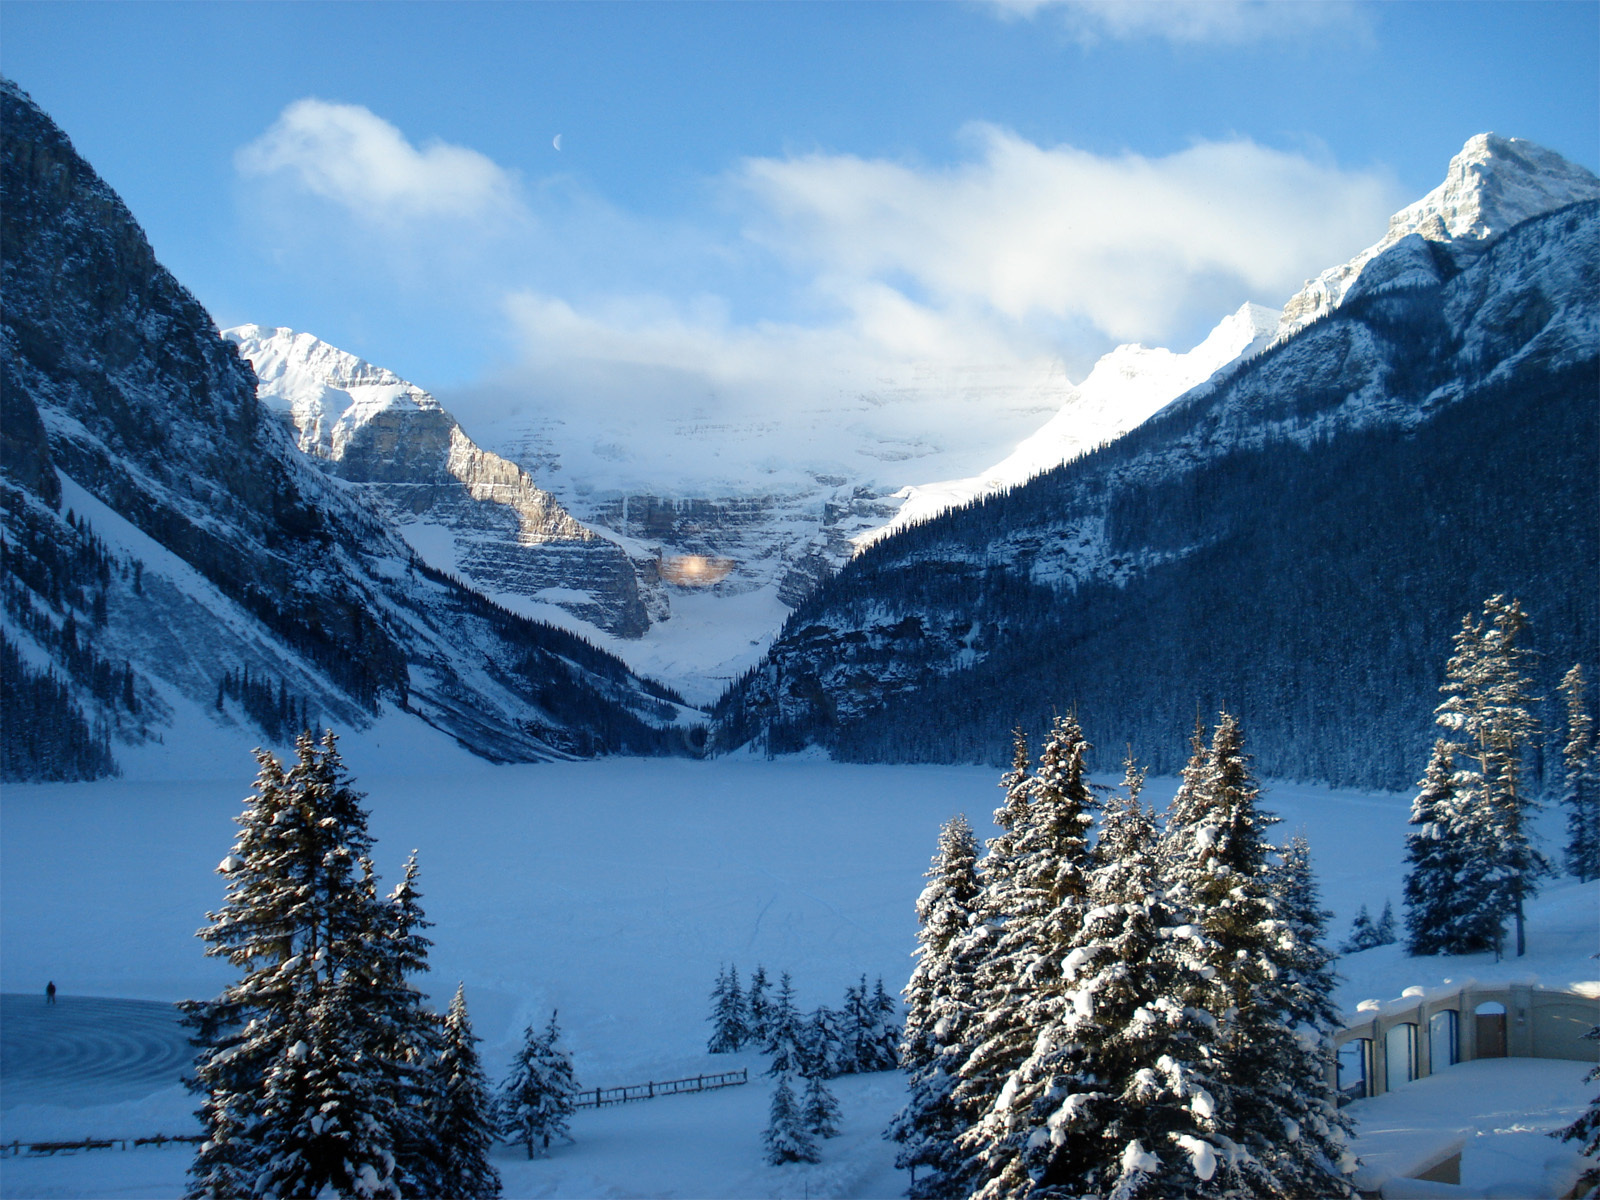 Canada images lake louise hd wallpaper and background for Wallpaper canada